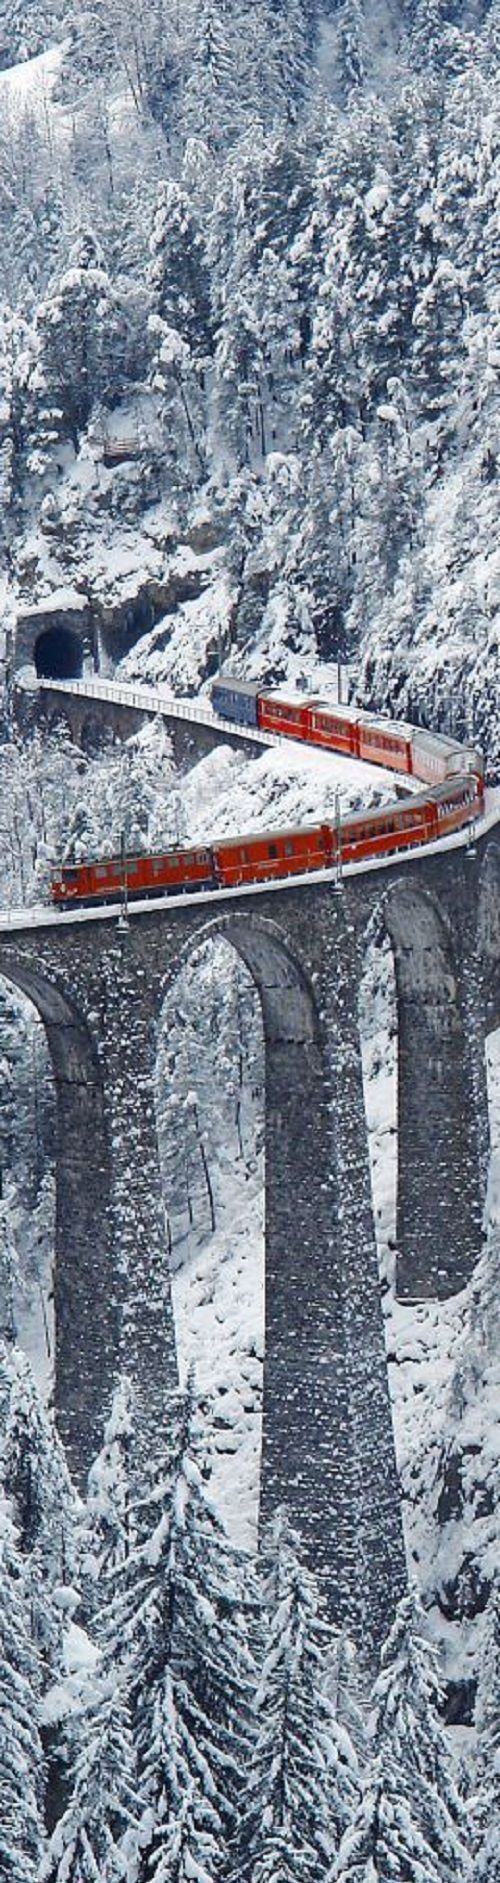 Landwasser Viaduct, Graubünden Switzerland. This photo is amazing!